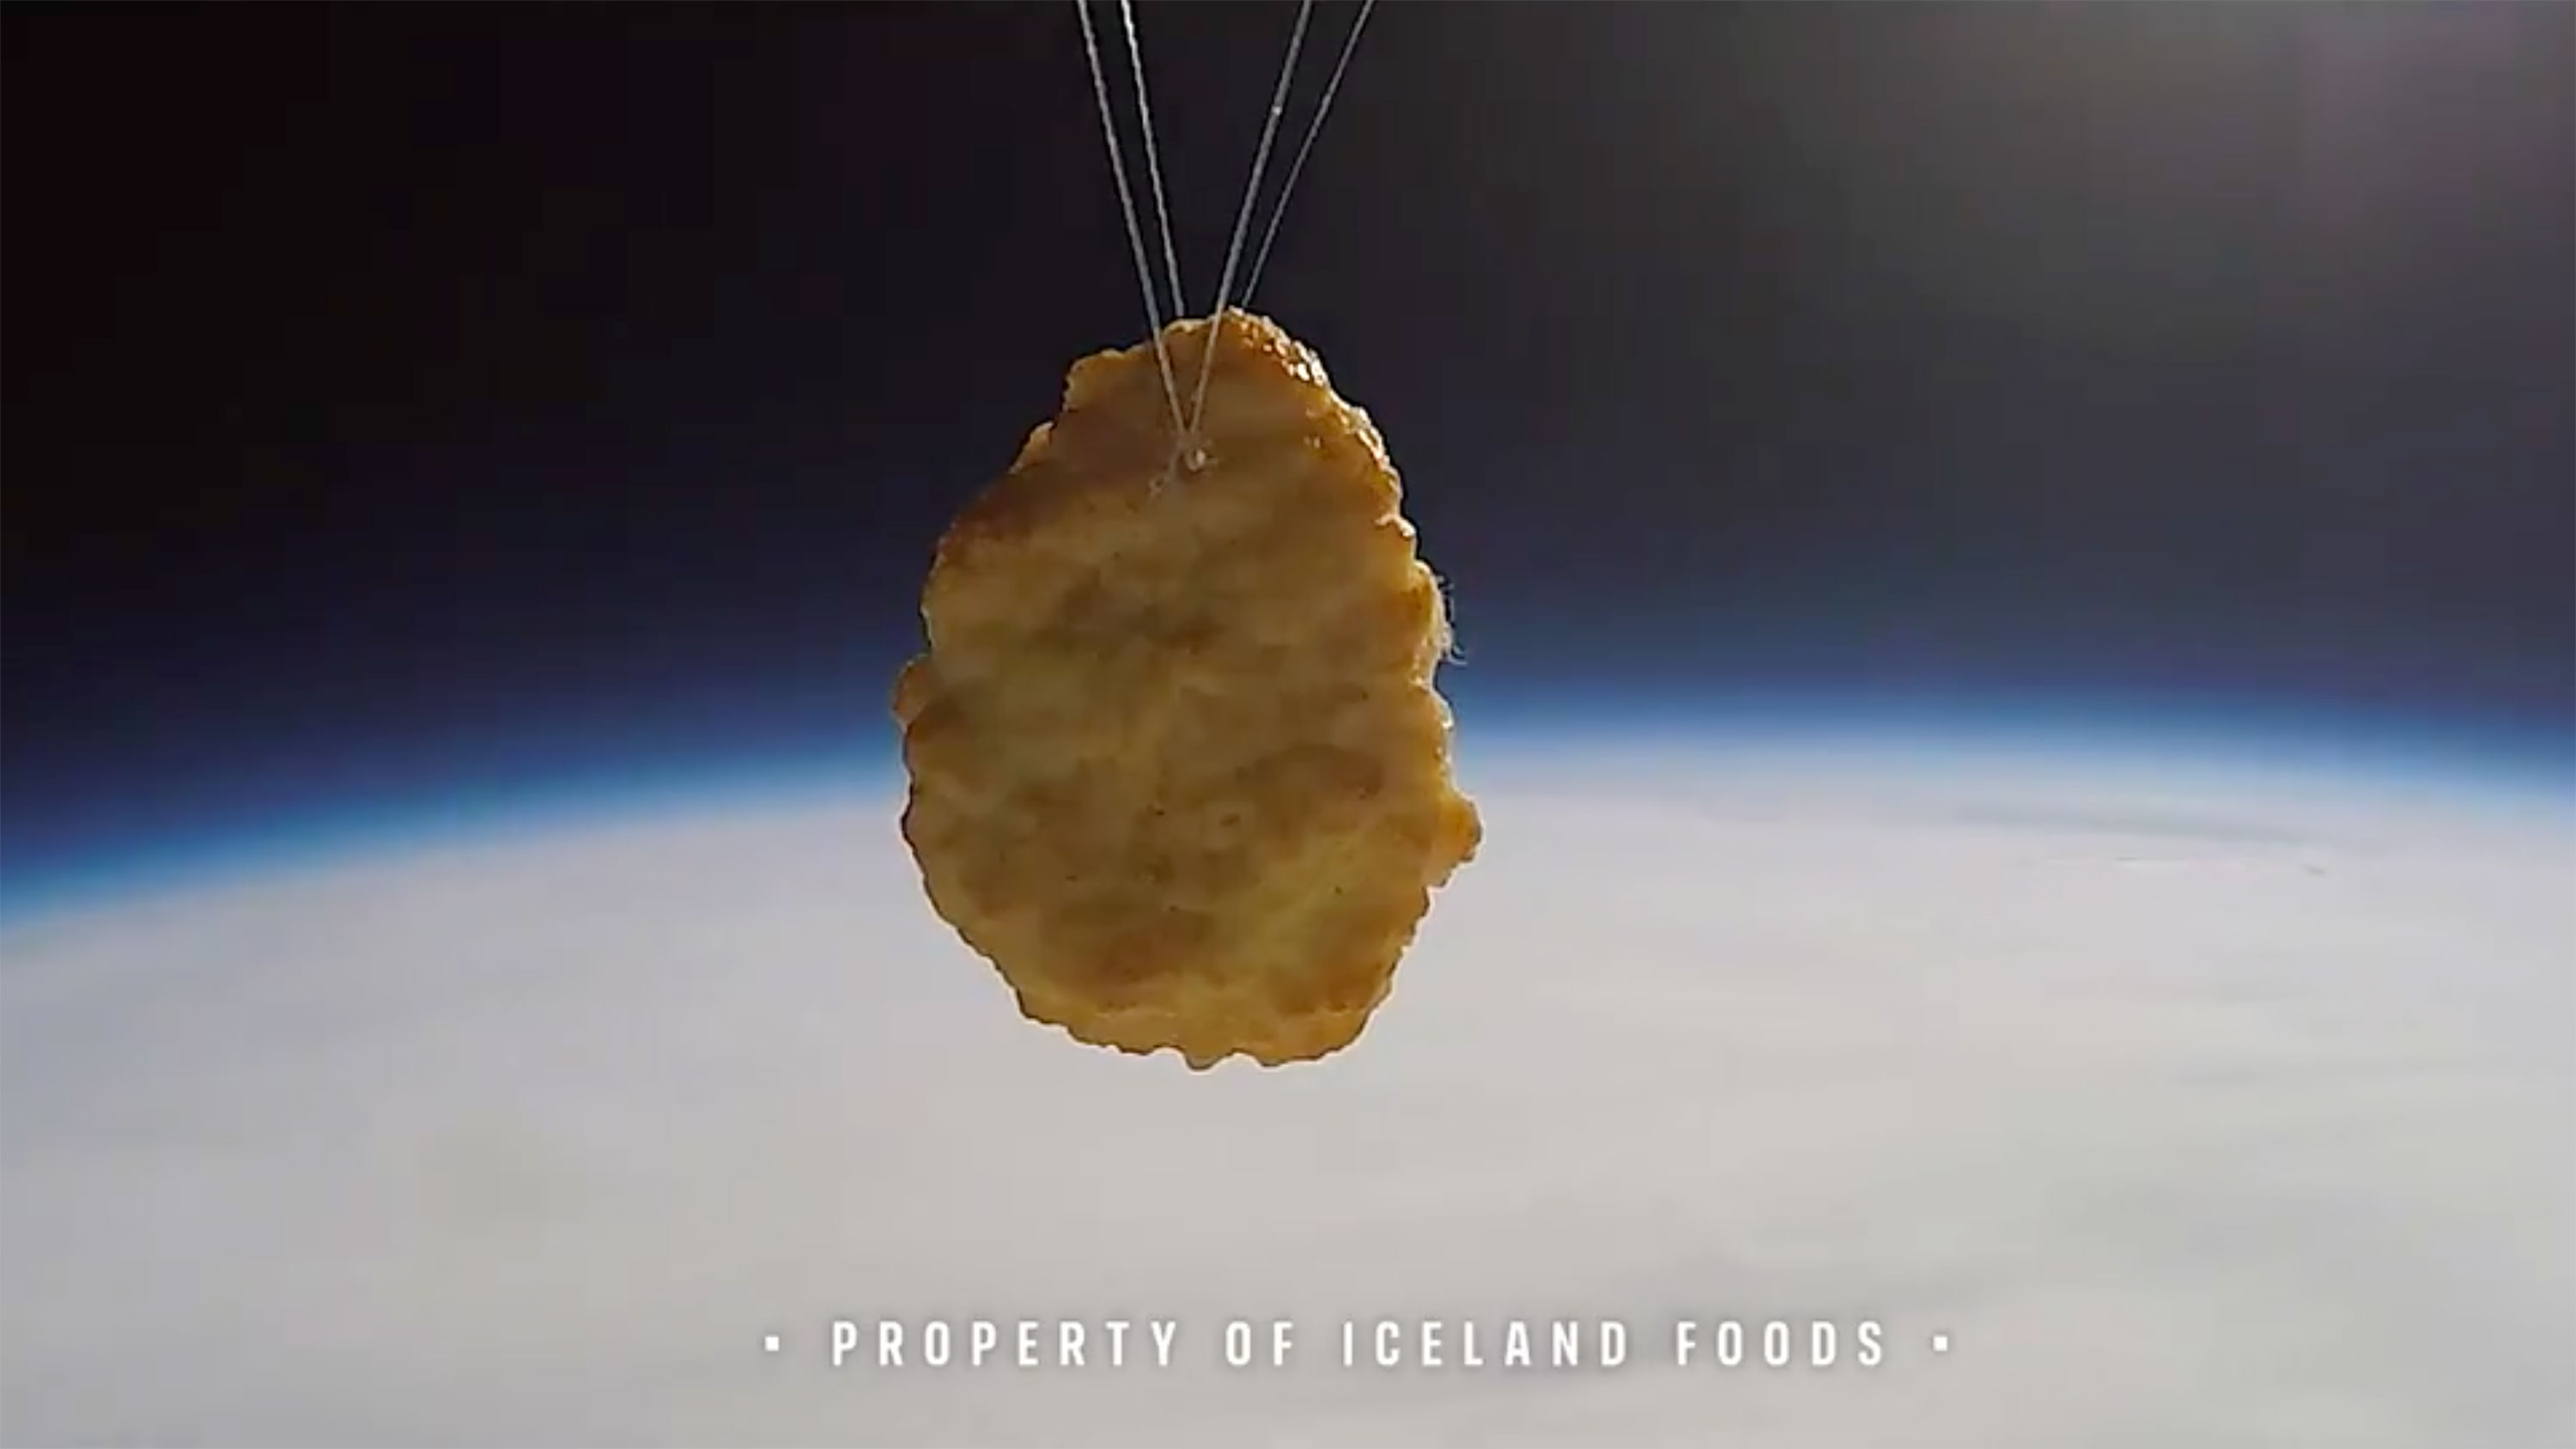 A British supermarket launched a chicken nugget into space